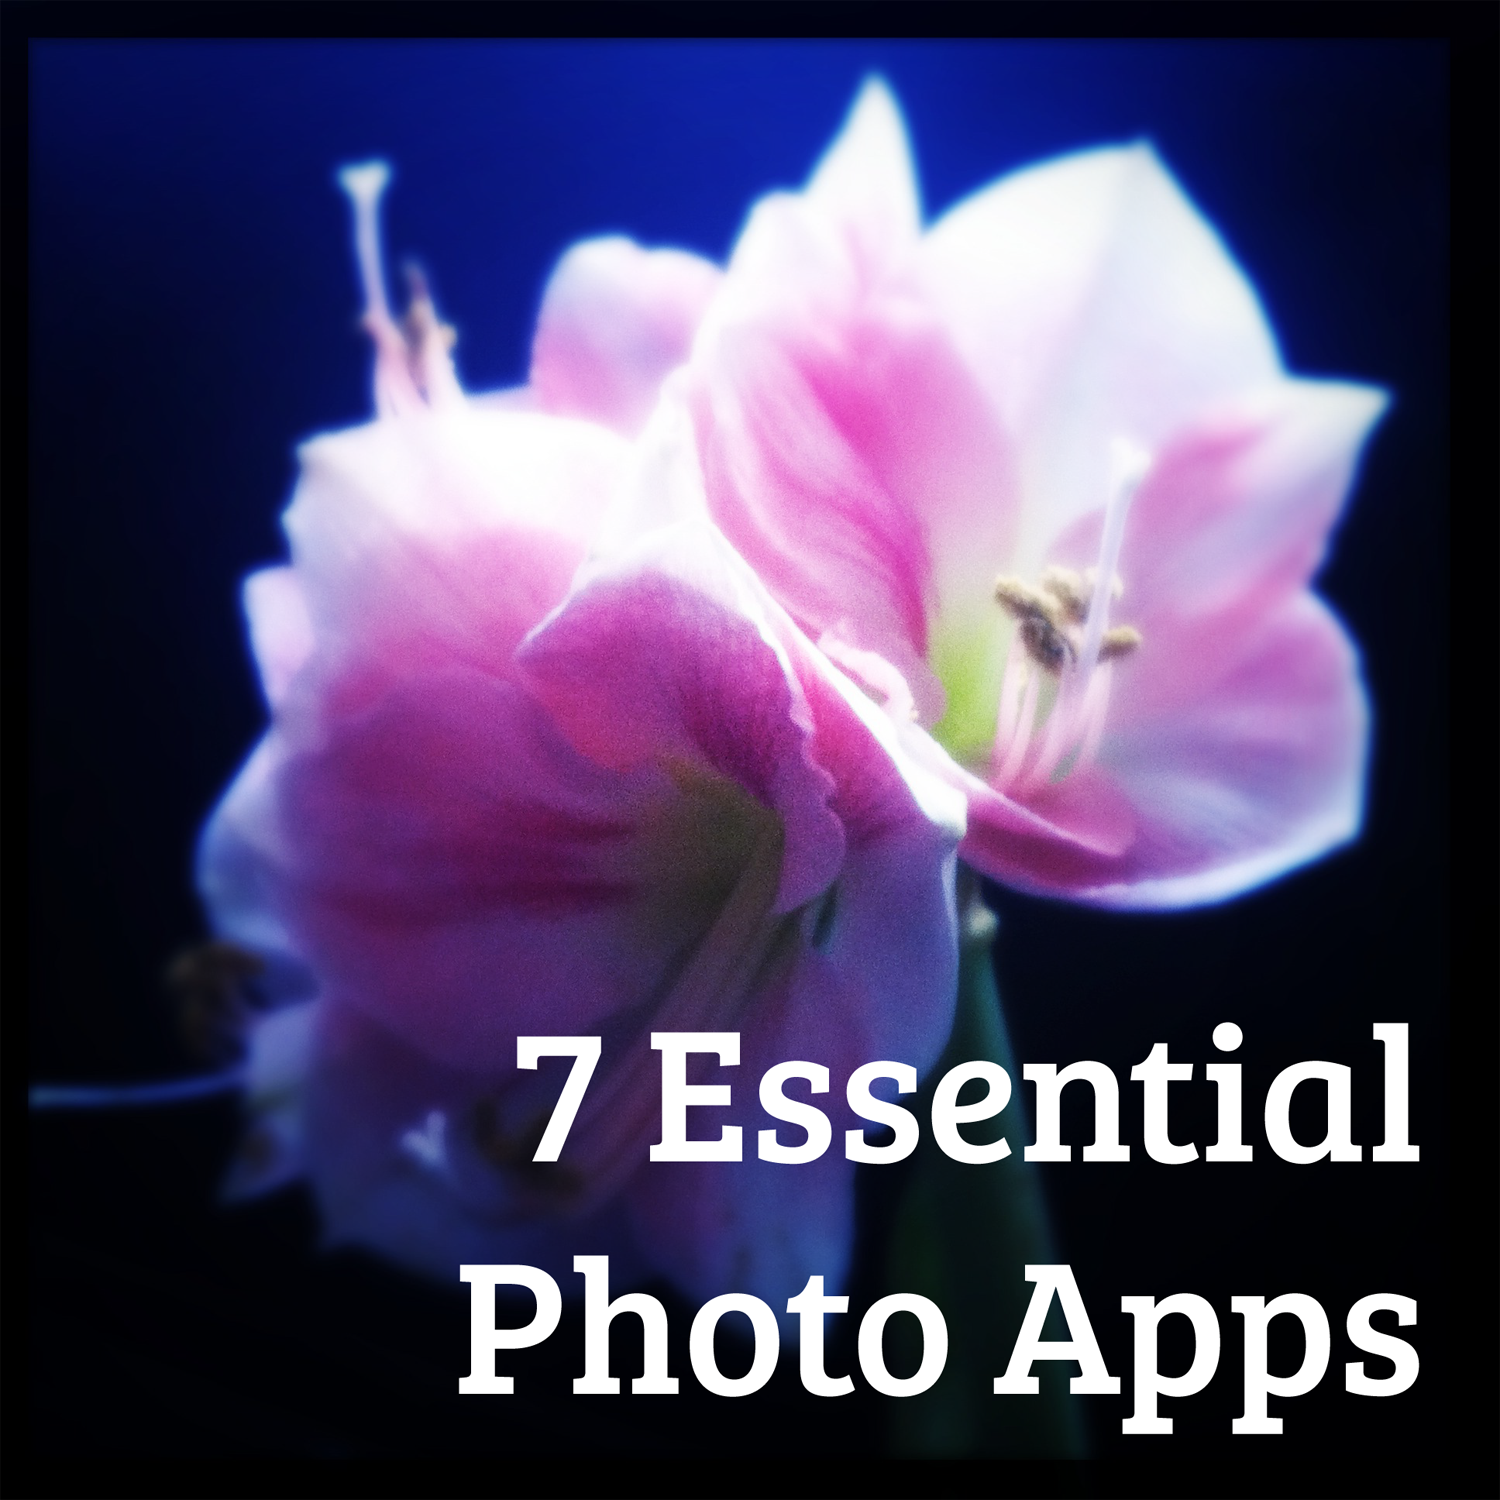 essential-photo-apps.png